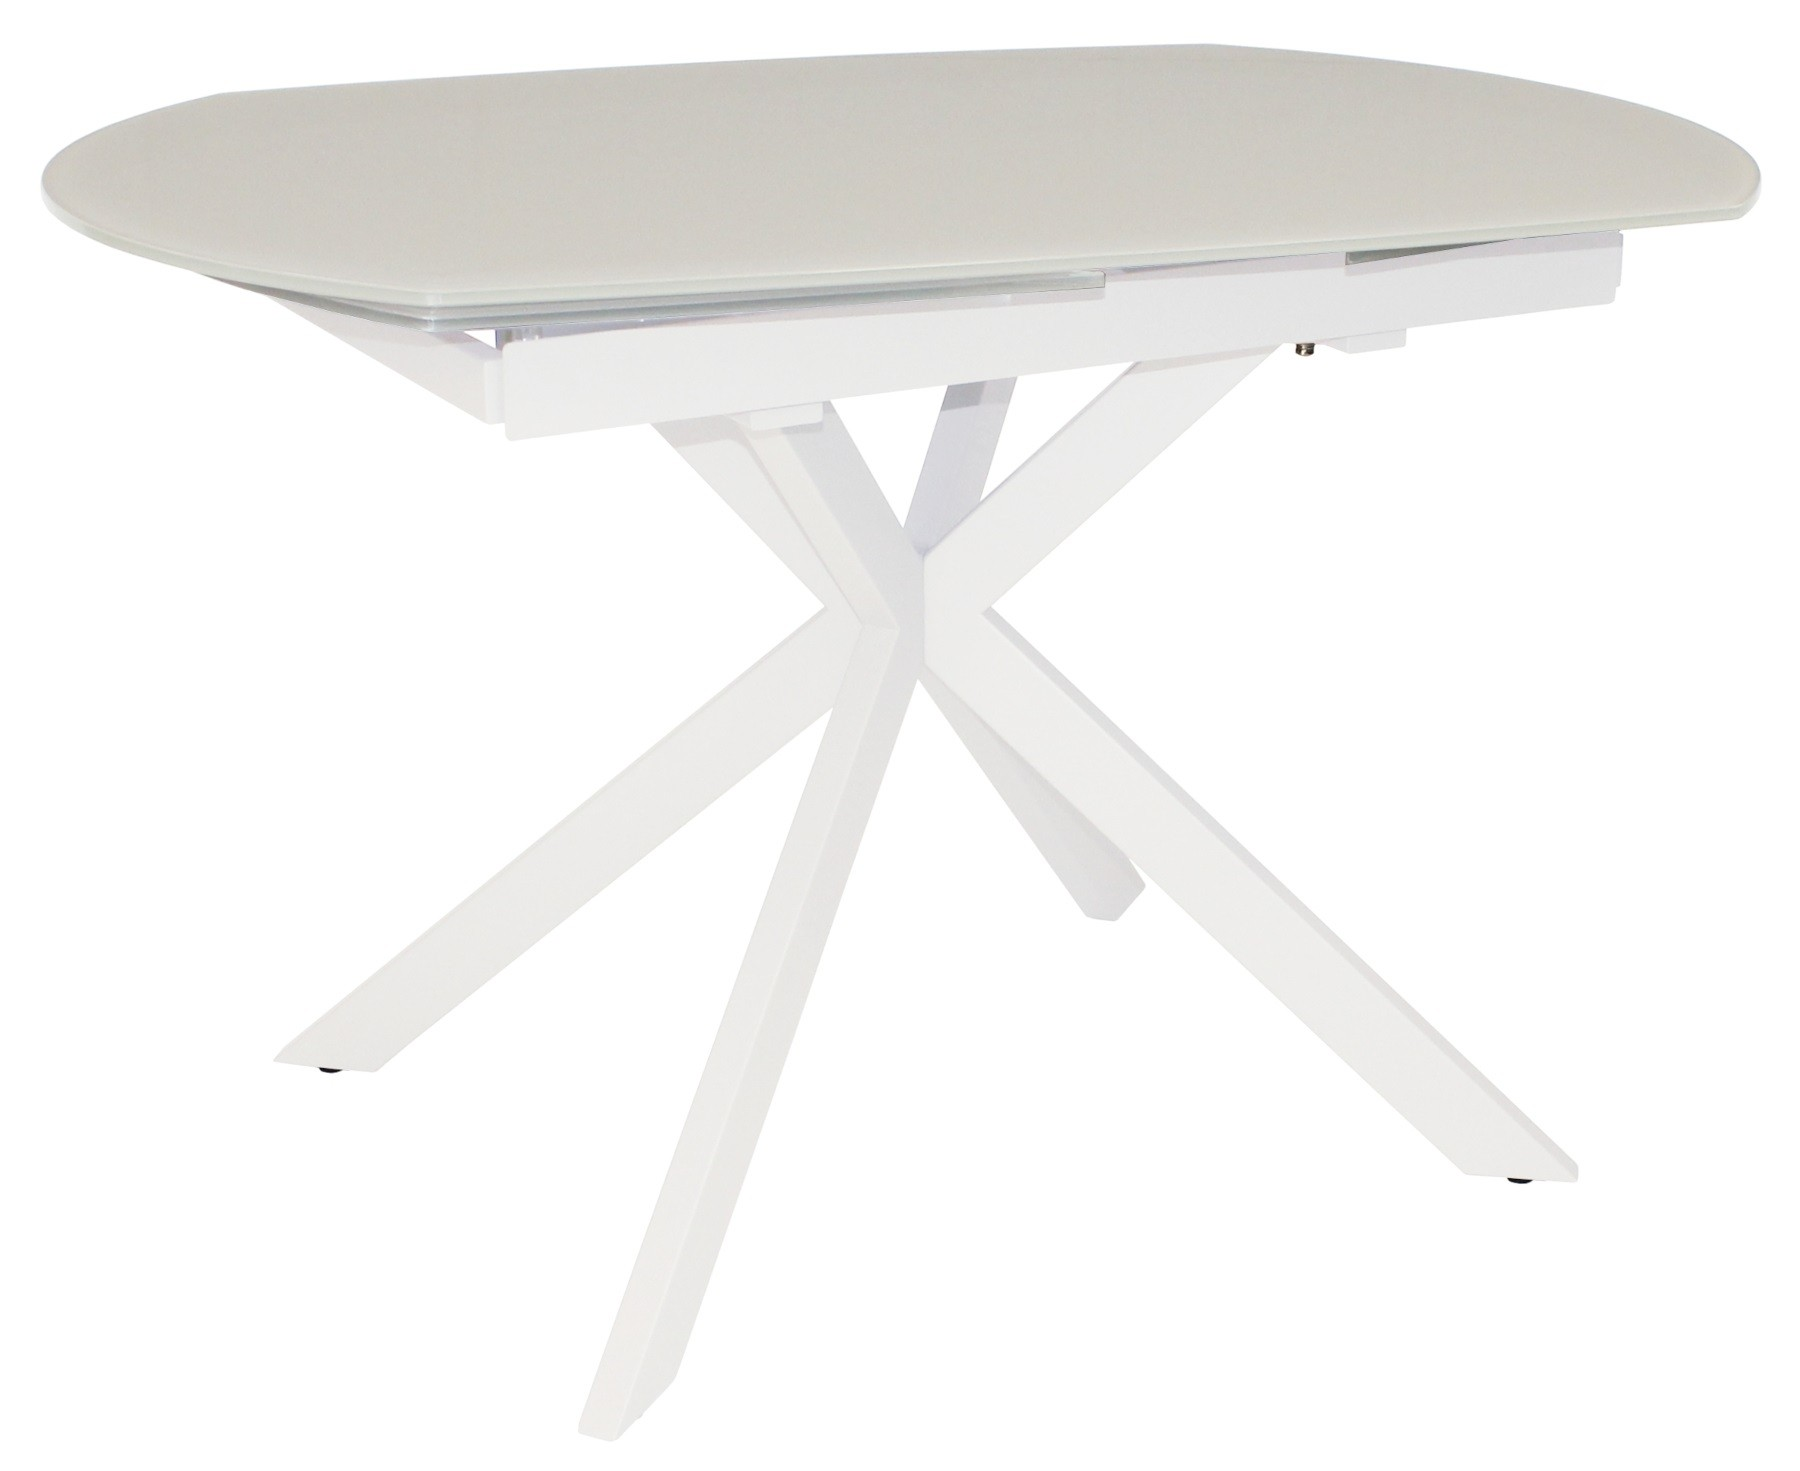 CONTEMPORARY Motion Extending Dining Table - White